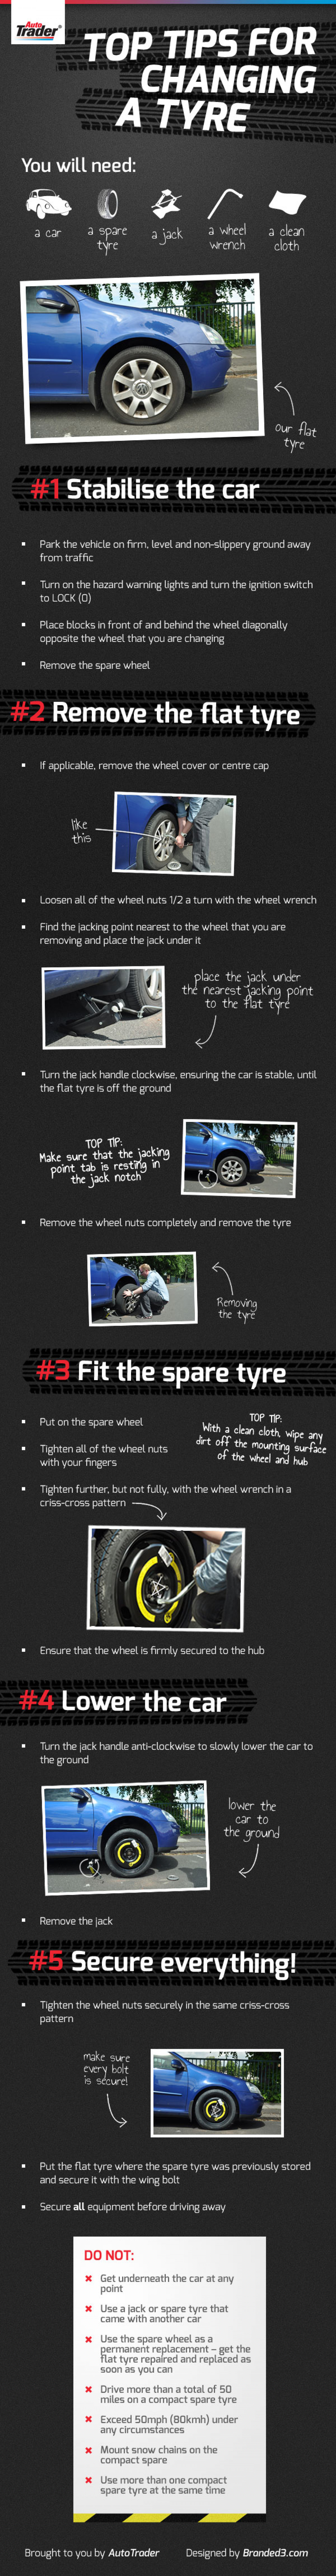 Top Tips for Changing a Tyre Infographic